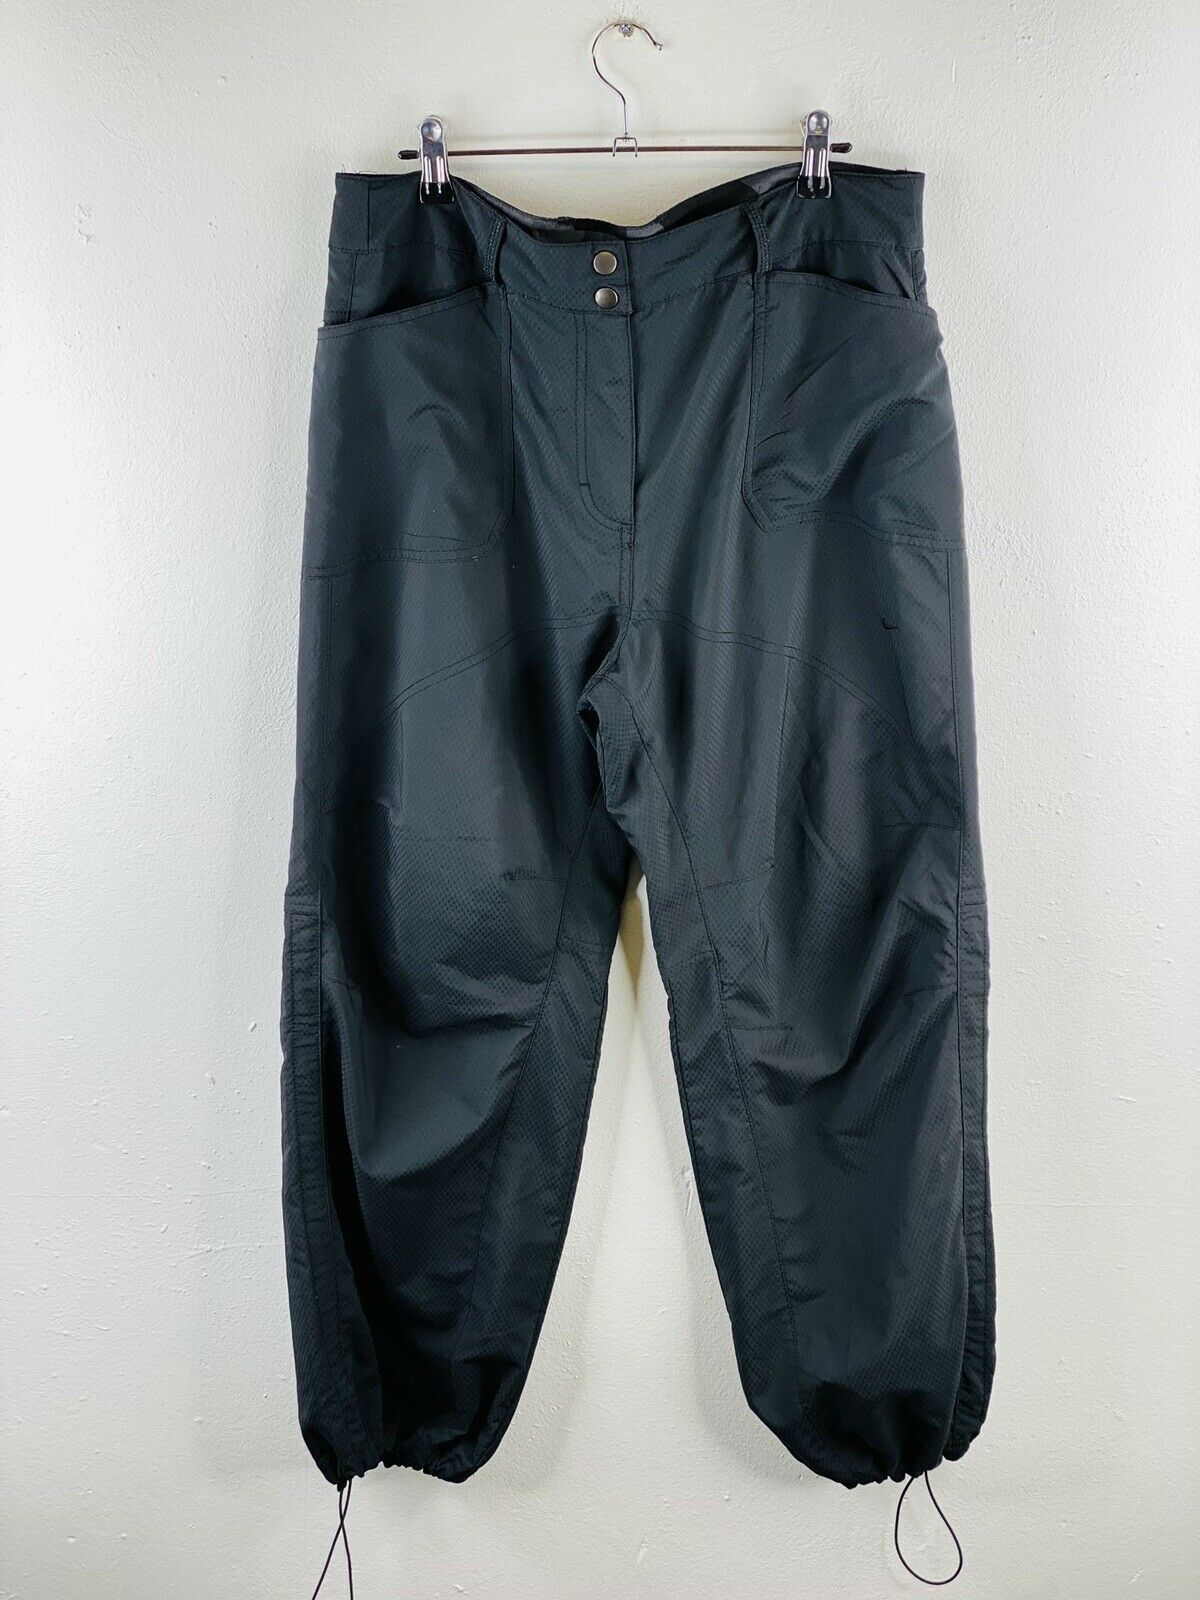 Nike Women's Casual Pants Size US10 Black Zip Close Snap Button Outdoor Hiking